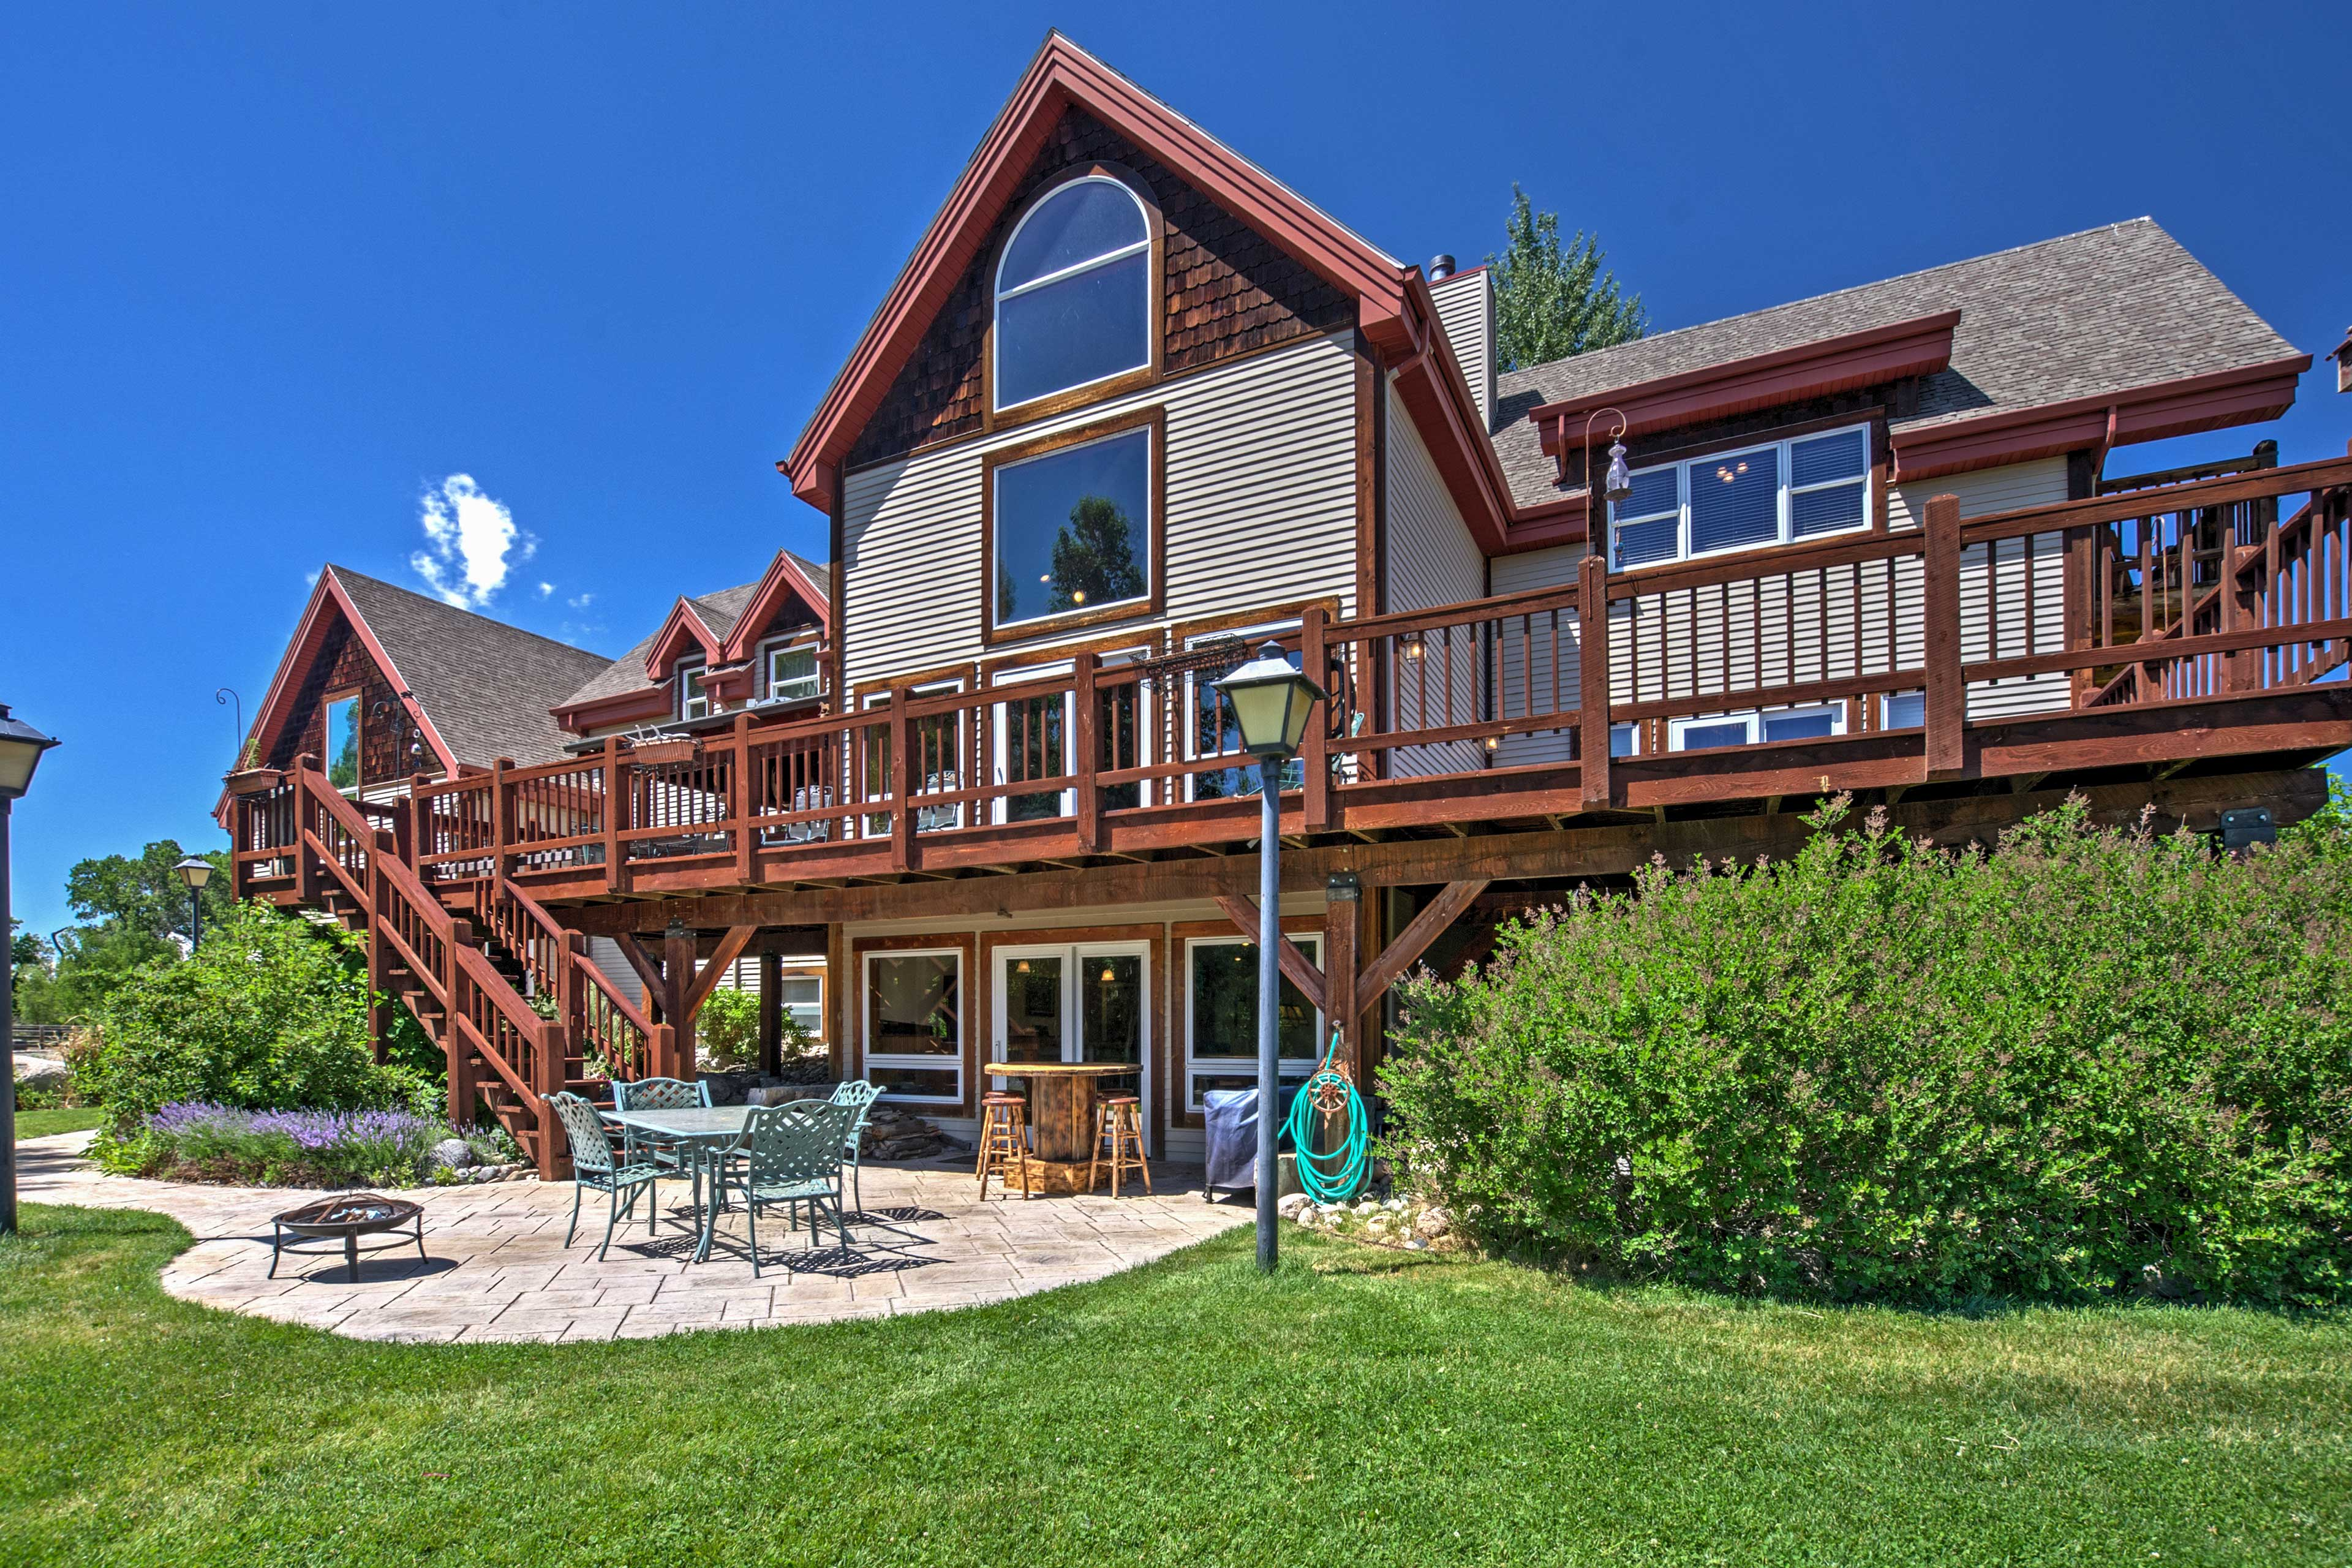 Gather your family and friends and head to this 7BR, 4.5-bath vacation home.